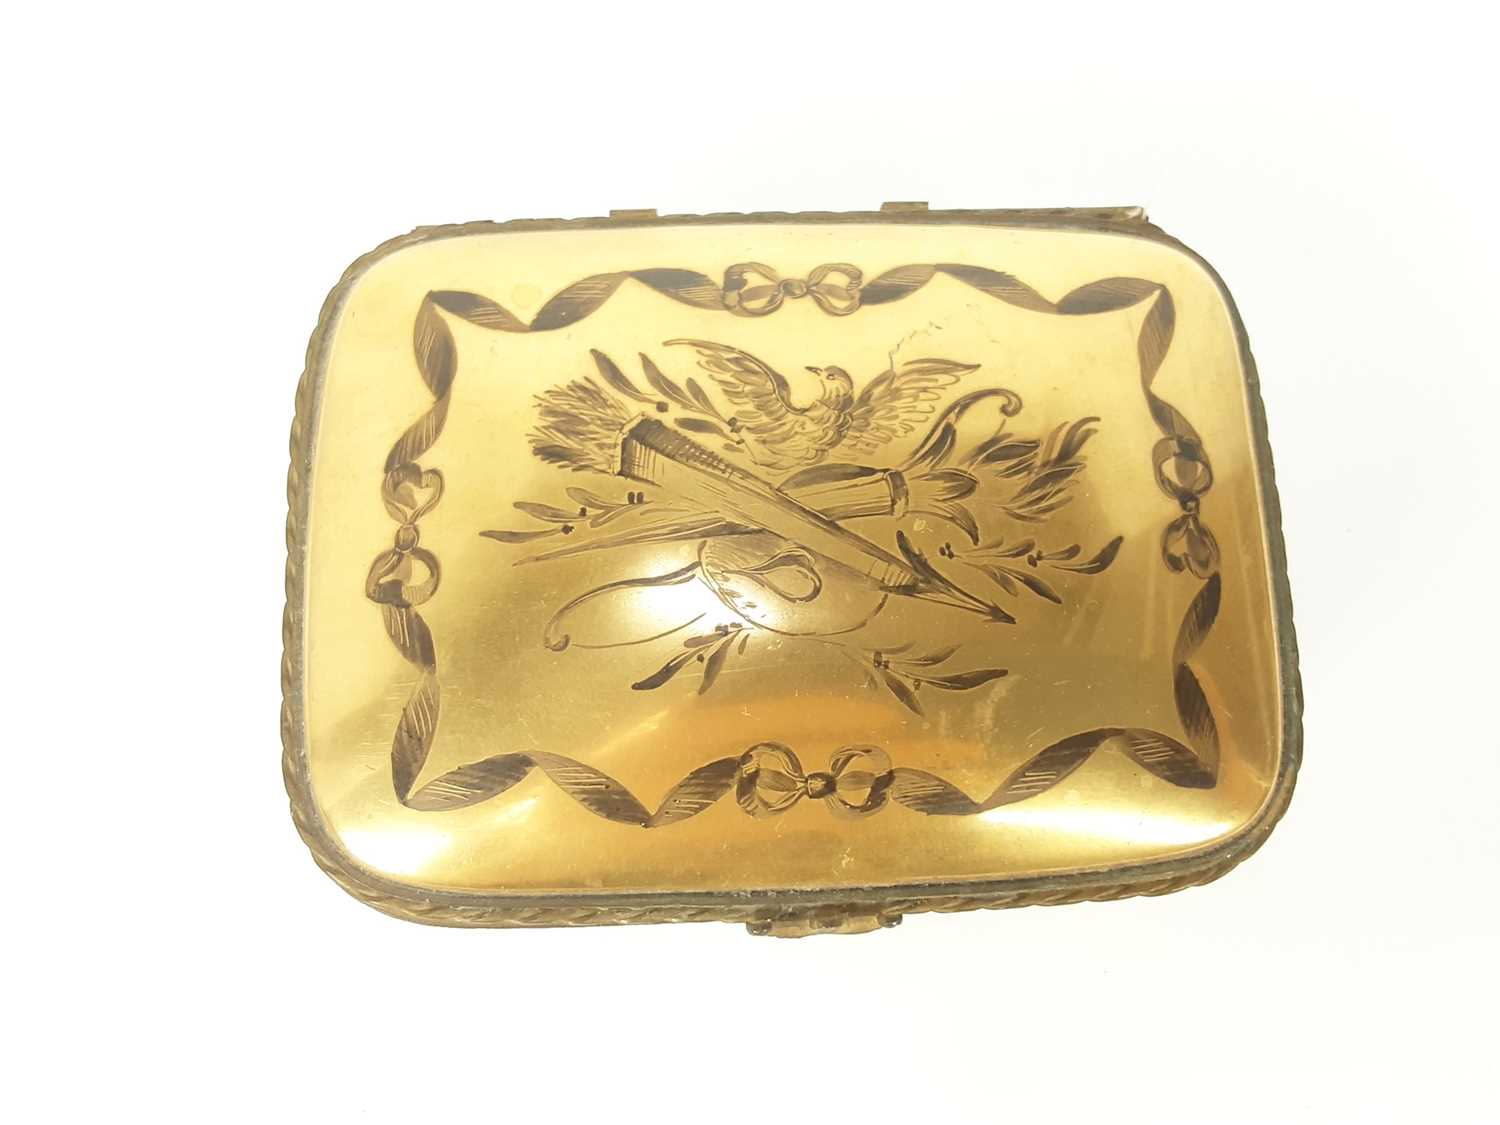 French ormolu-mounted porcelain box, late 19th century, probably Limoges, gilded and enamelled en gr - Image 5 of 7